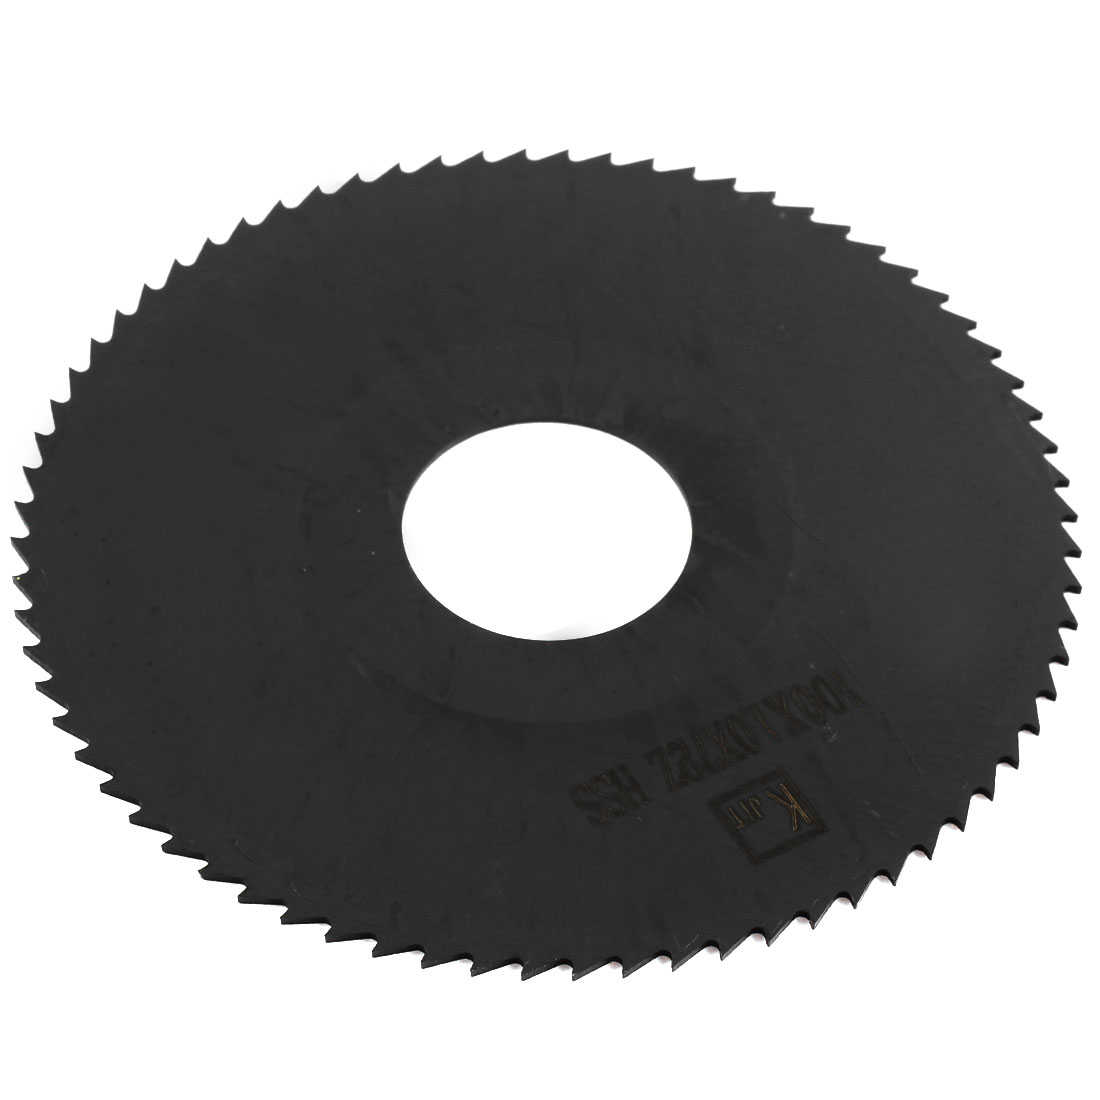 Unique Bargains Black HSS 72 Teeth 100mm Dia 1mm Thickness Milling Cutter Slitting Saw